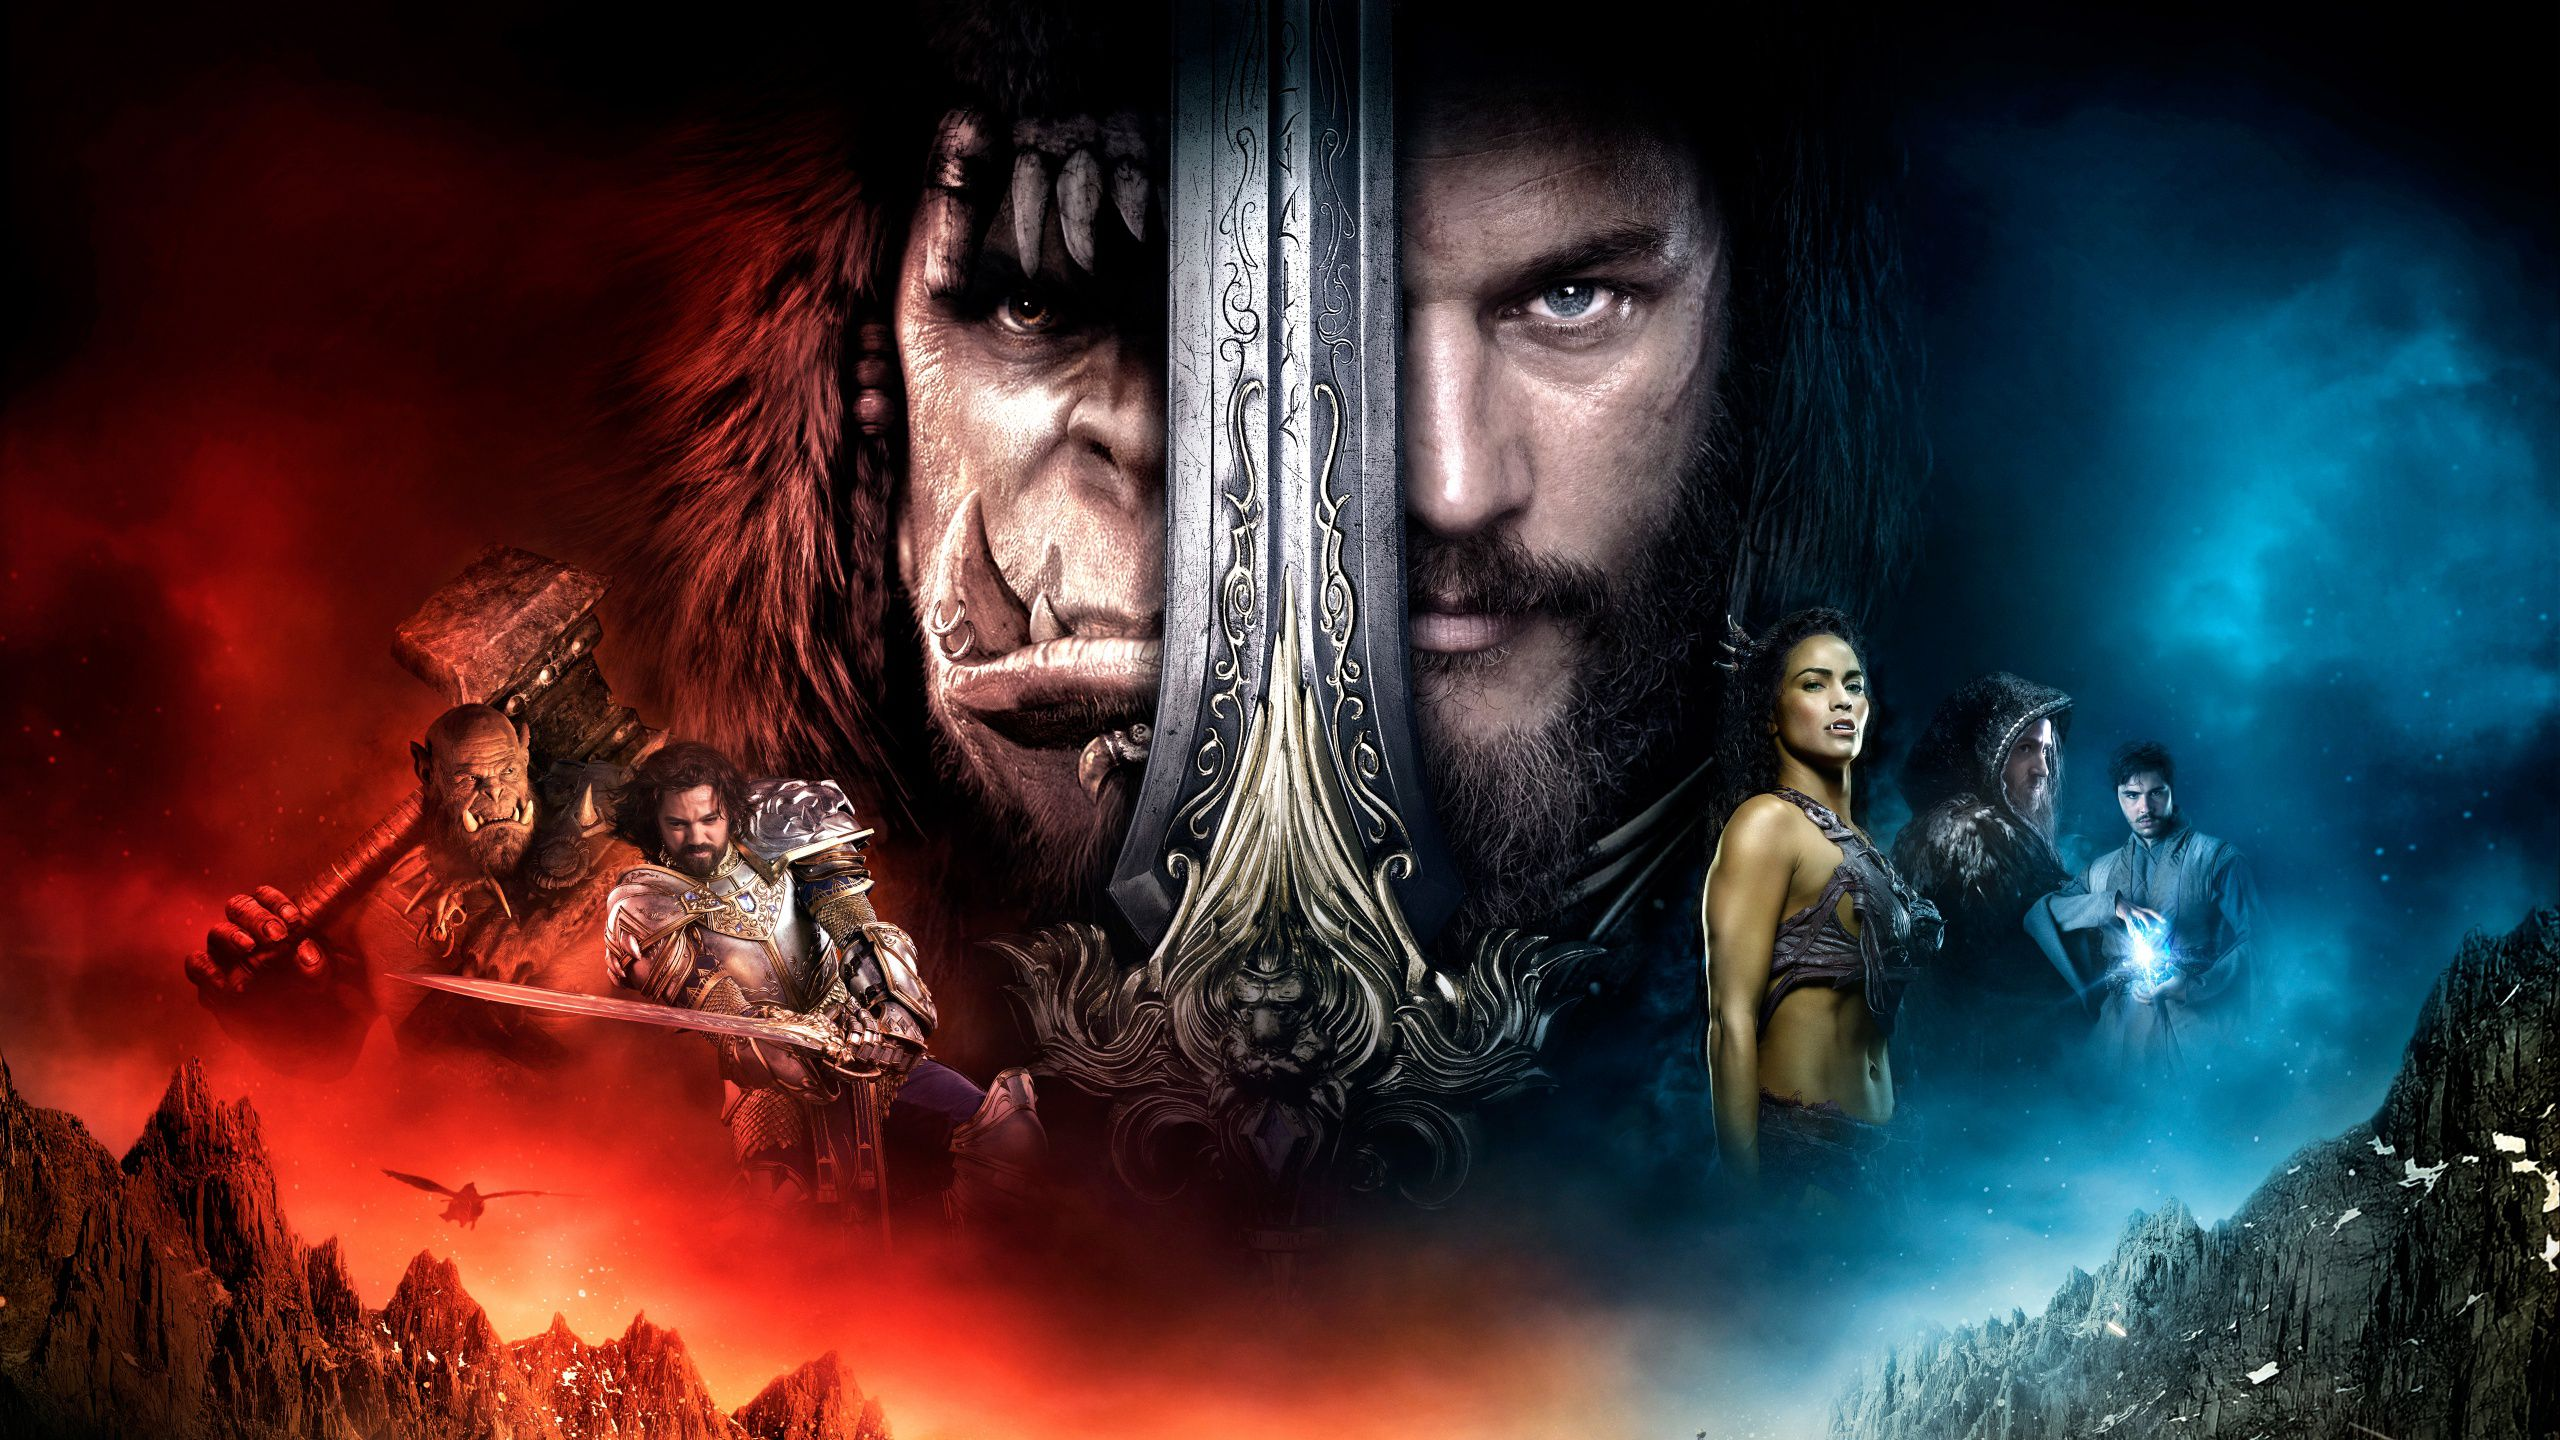 Warcraft-2016-Movie-Wallpapers-Full-HD-Free-Download-Wallpaperxyz.com-13